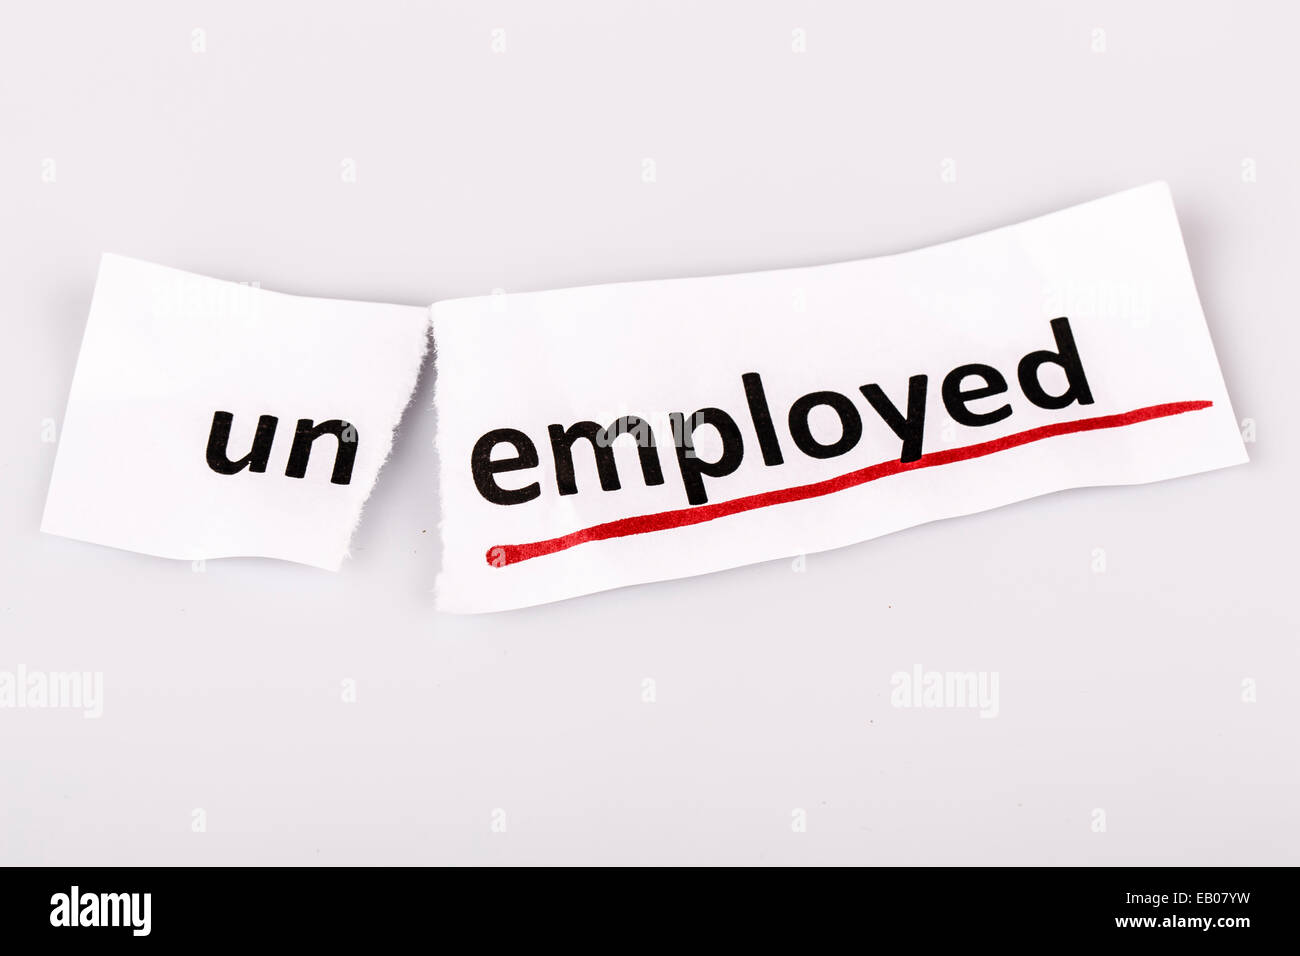 The word unemployed changed to employed on torn paper and white background - Stock Image